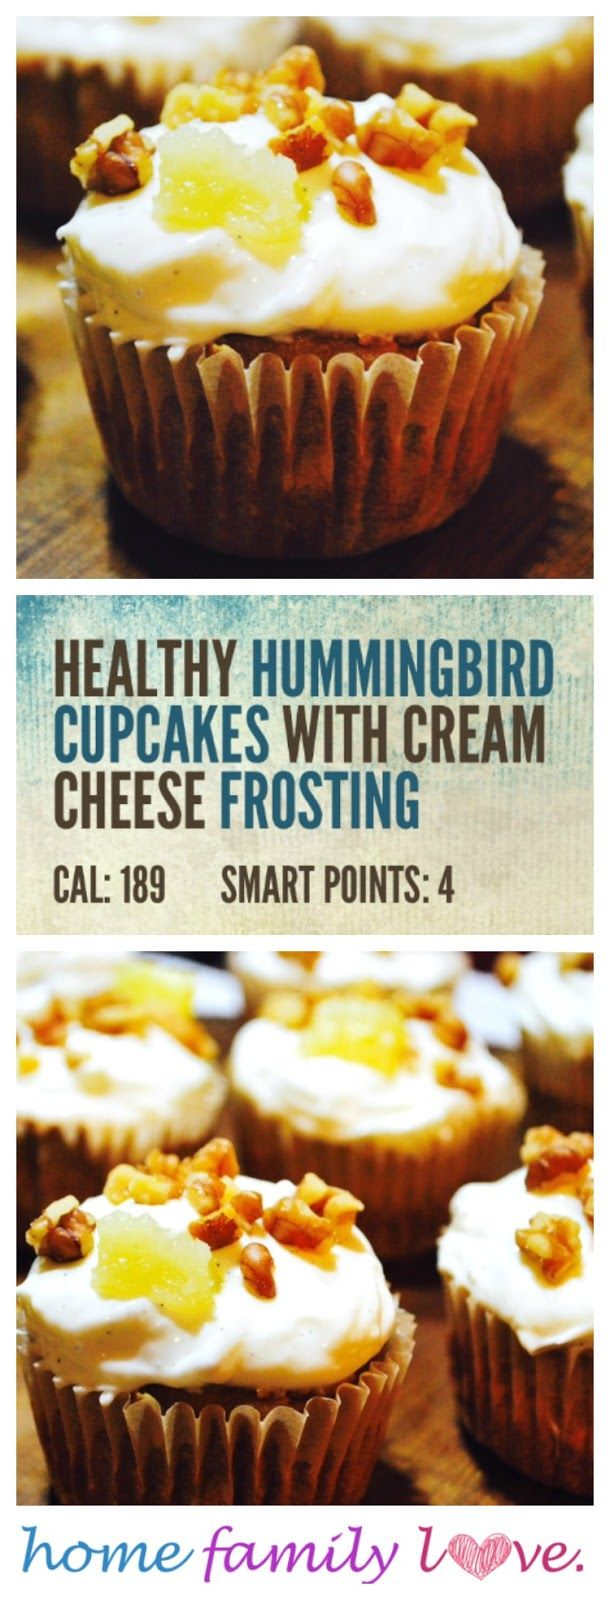 Healthy Hummingbird Cupcakes with Cream Cheese Frosting